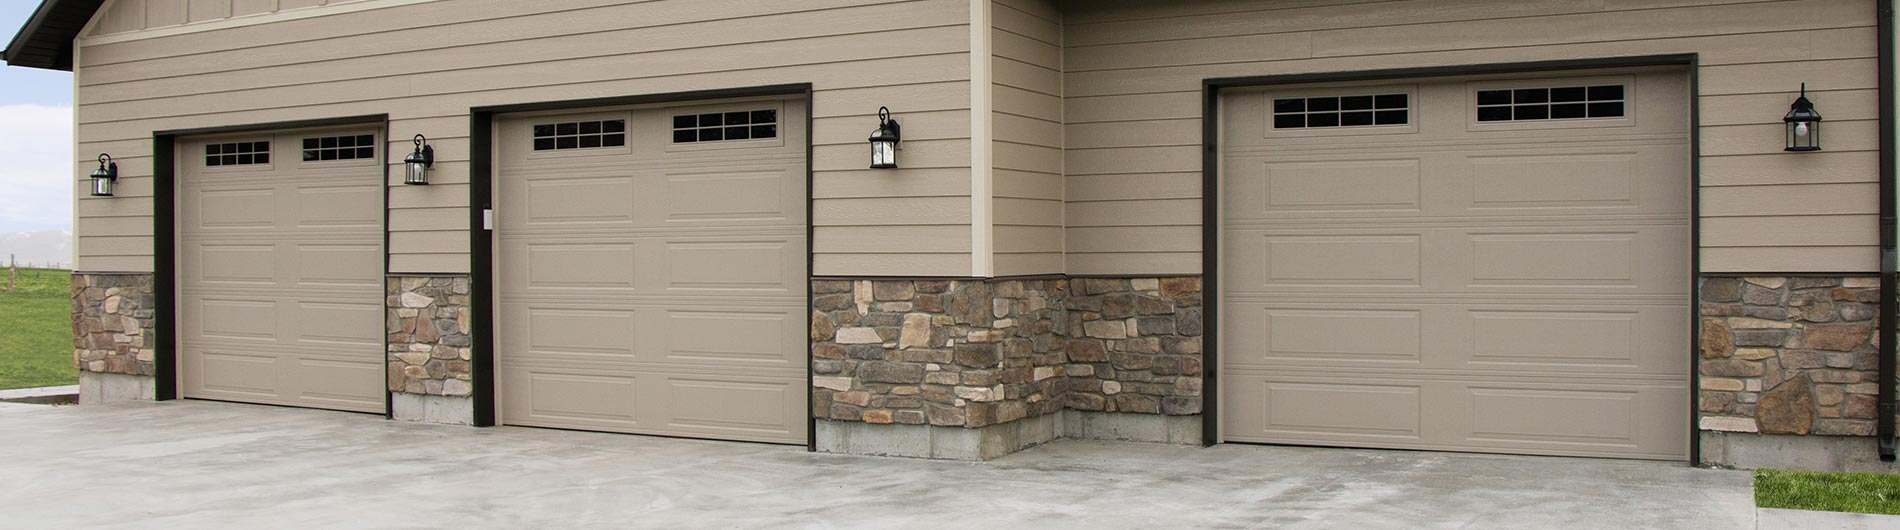 Steel Garage Door Ranch Desert Tan Stockbridgeii